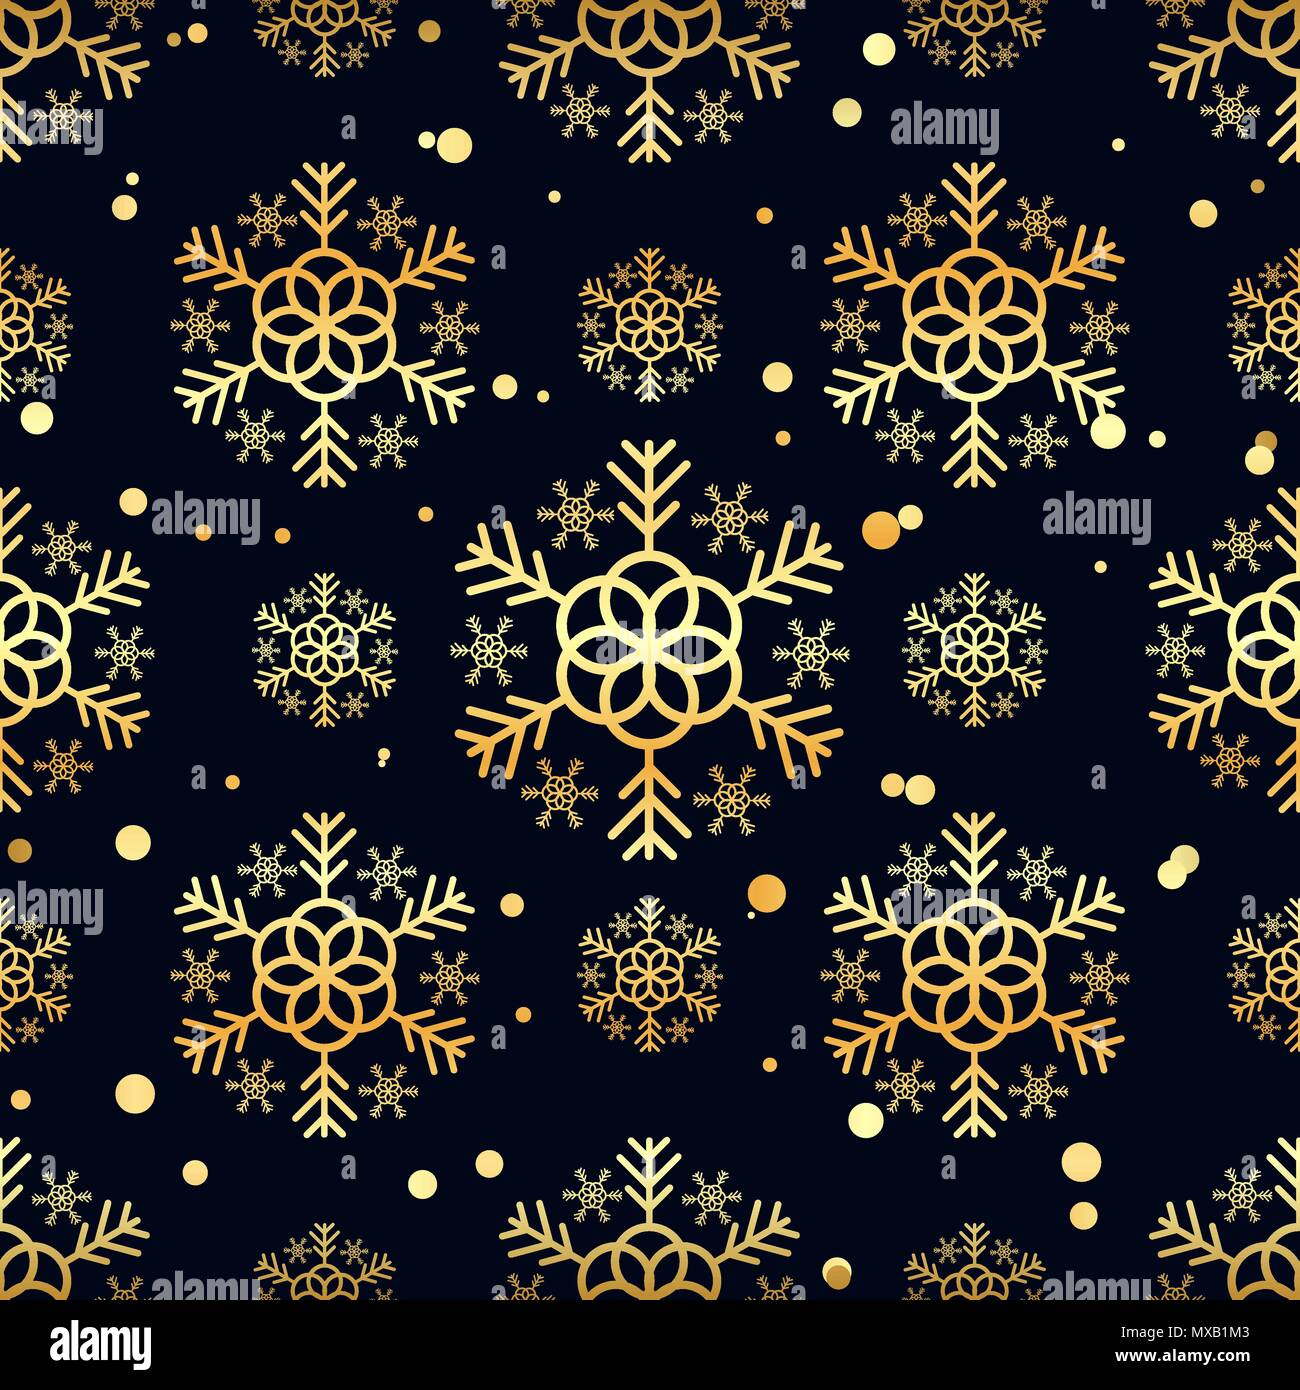 gold snowflakes and circles on black background winter background